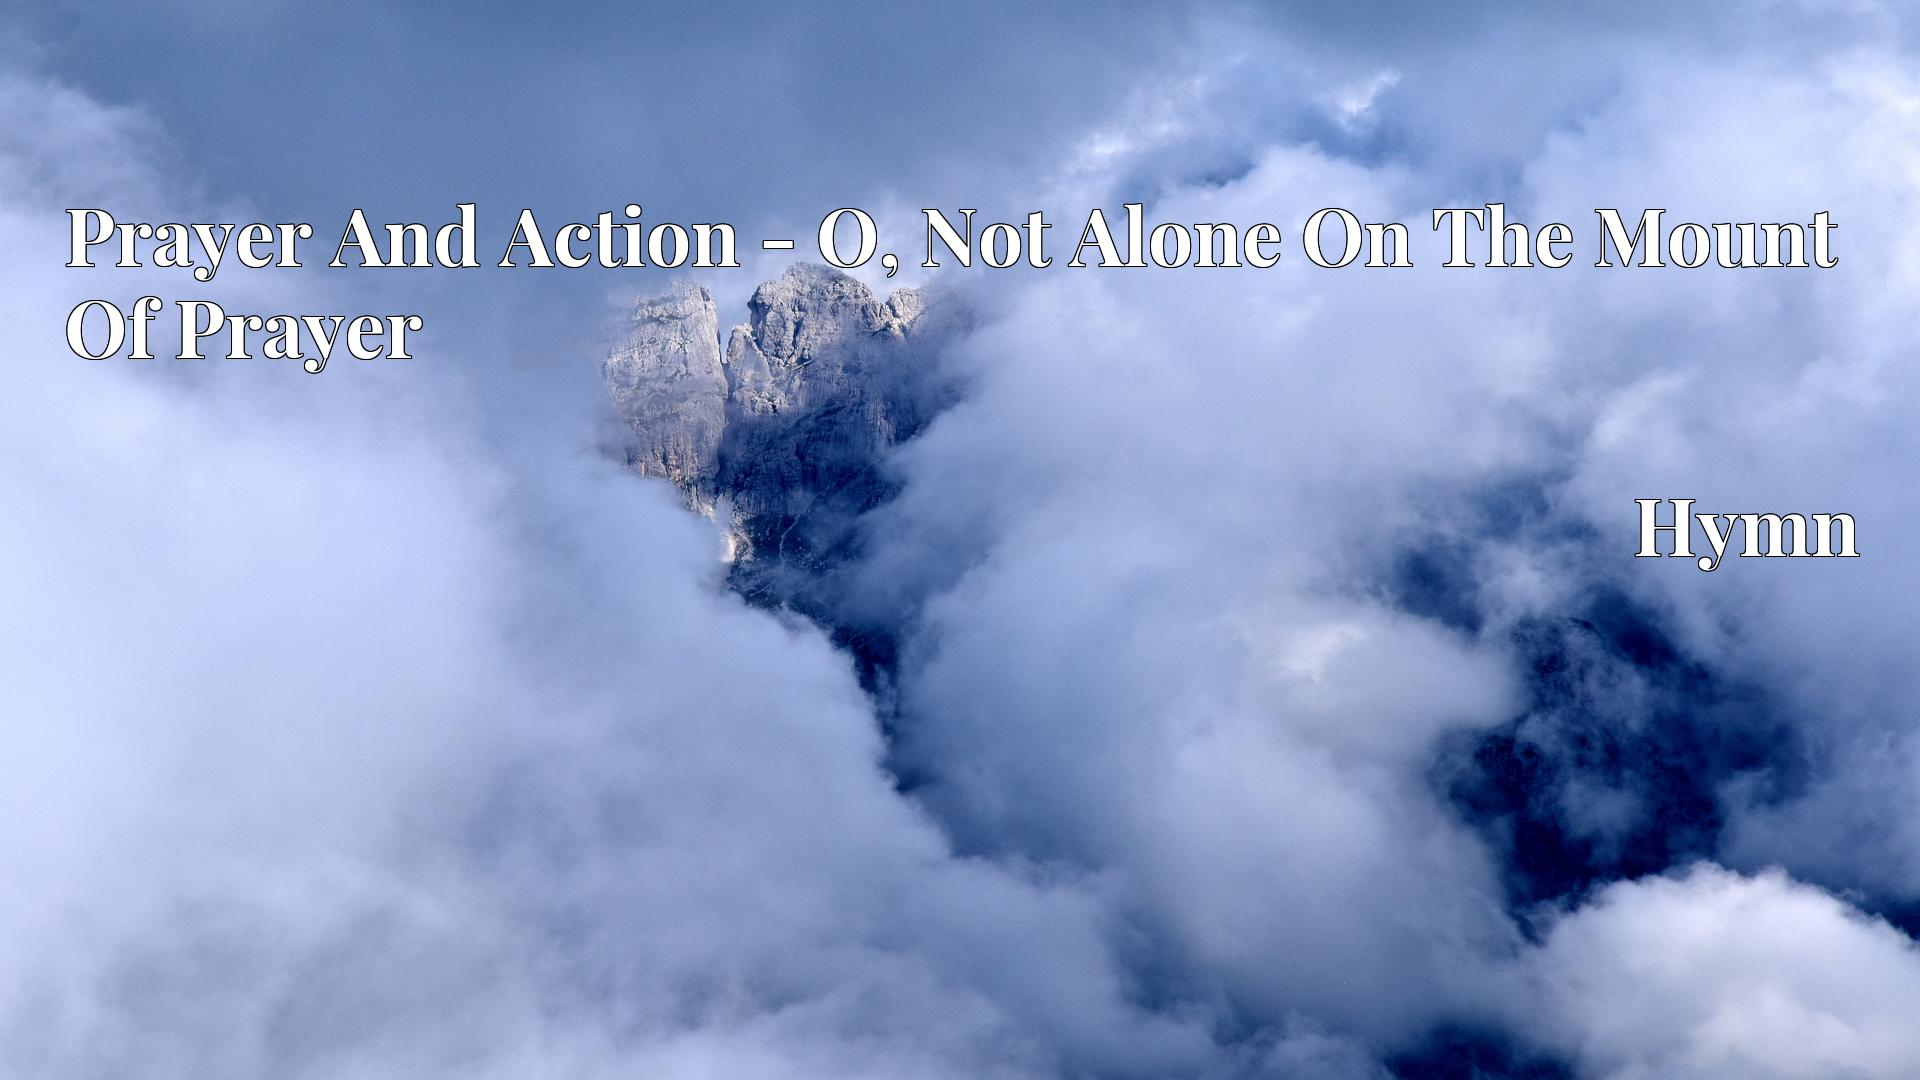 Prayer And Action - O, Not Alone On The Mount Of Prayer - Hymn